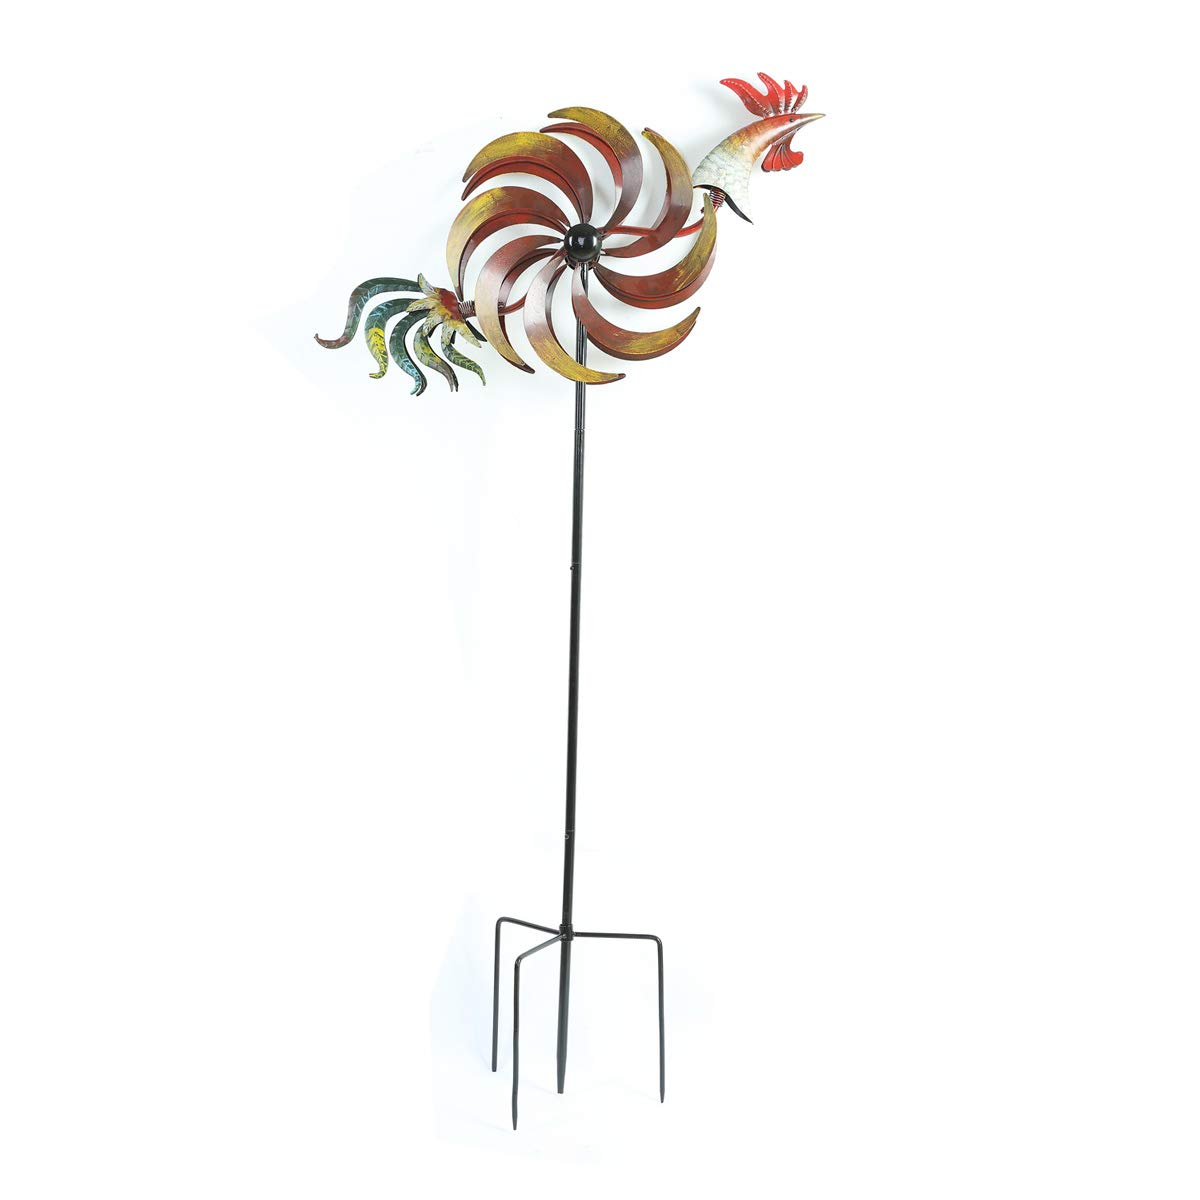 "Topadorn Wind Spinner Twirler Sculpture Garden Stake Outdoor Metal Stick Art Ornament Flaming Rooster Figurine Decor for Patio Lawn Yard, 31"" W x 7"" D x 64"" H, Rooster"